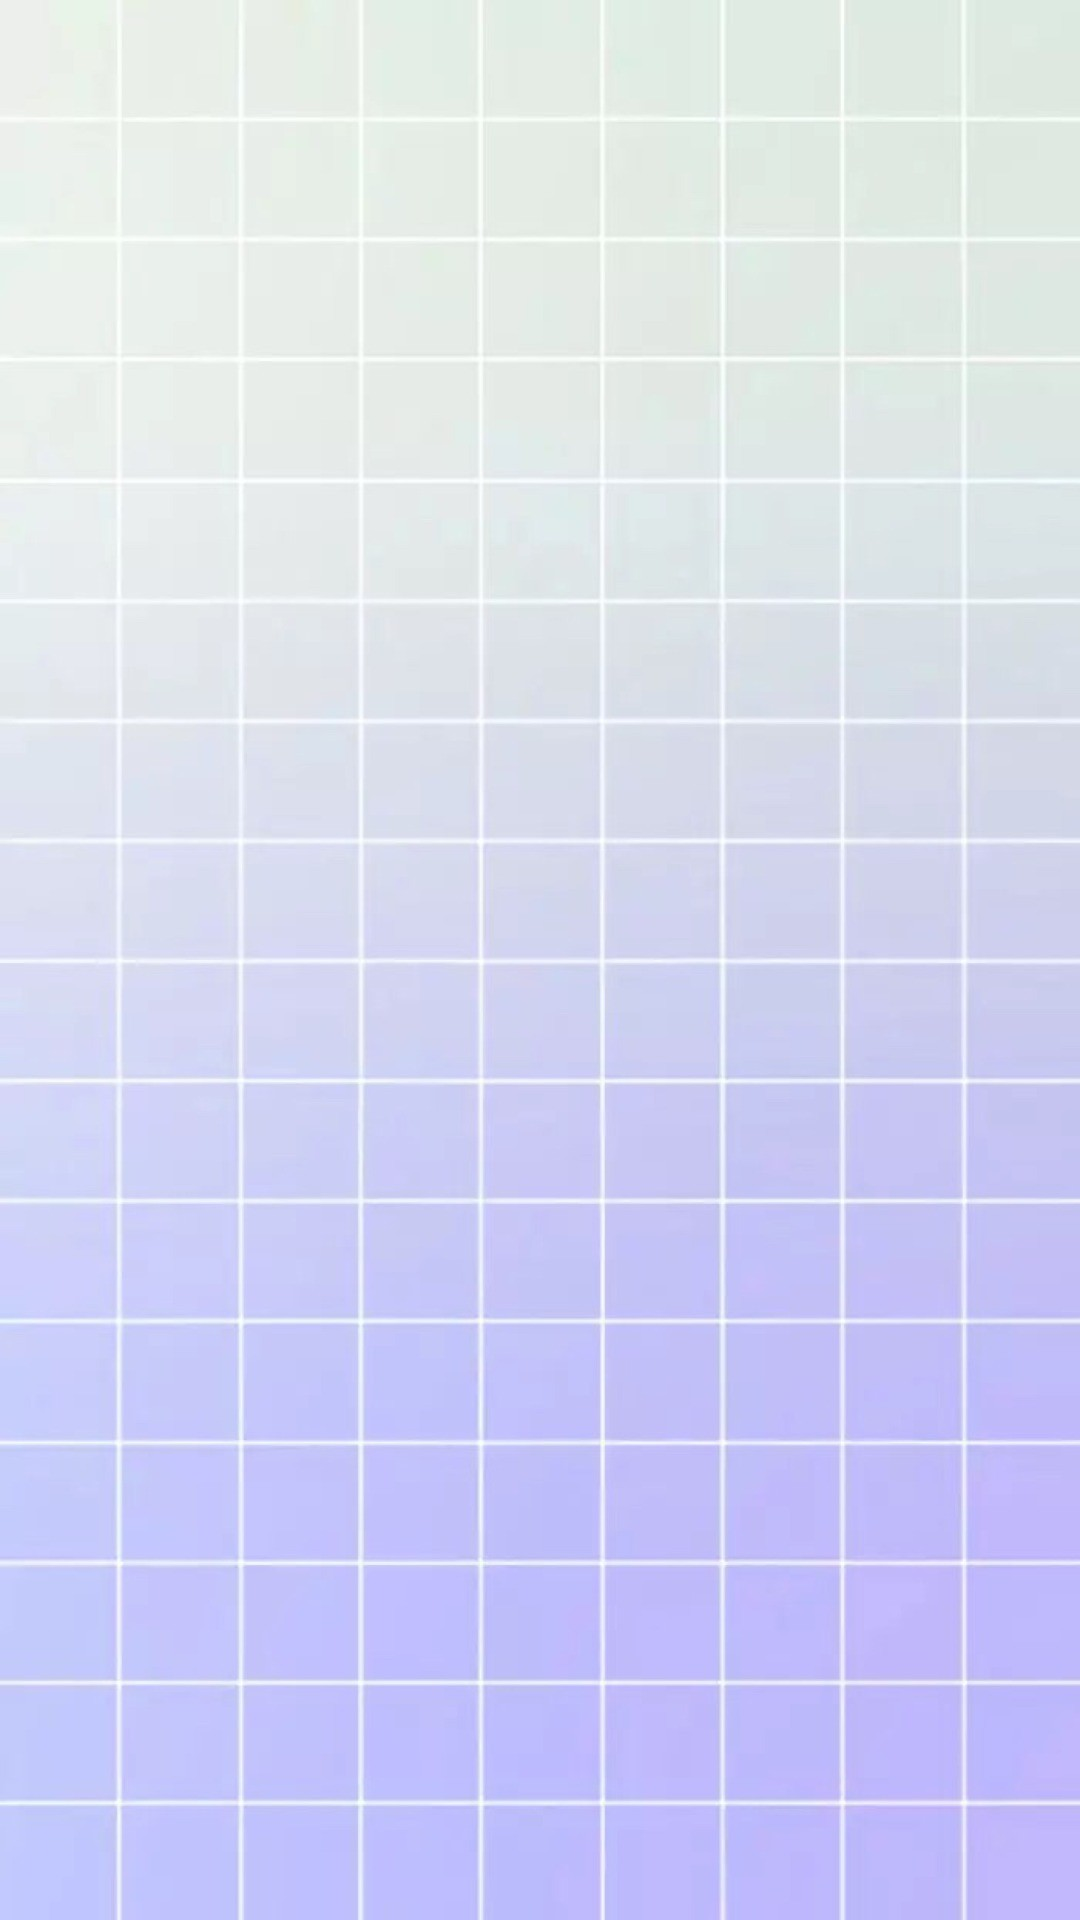 Grid Wallpaper Iphone X Aesthetic Background Tumblr 183 ① Download Free Awesome Hd